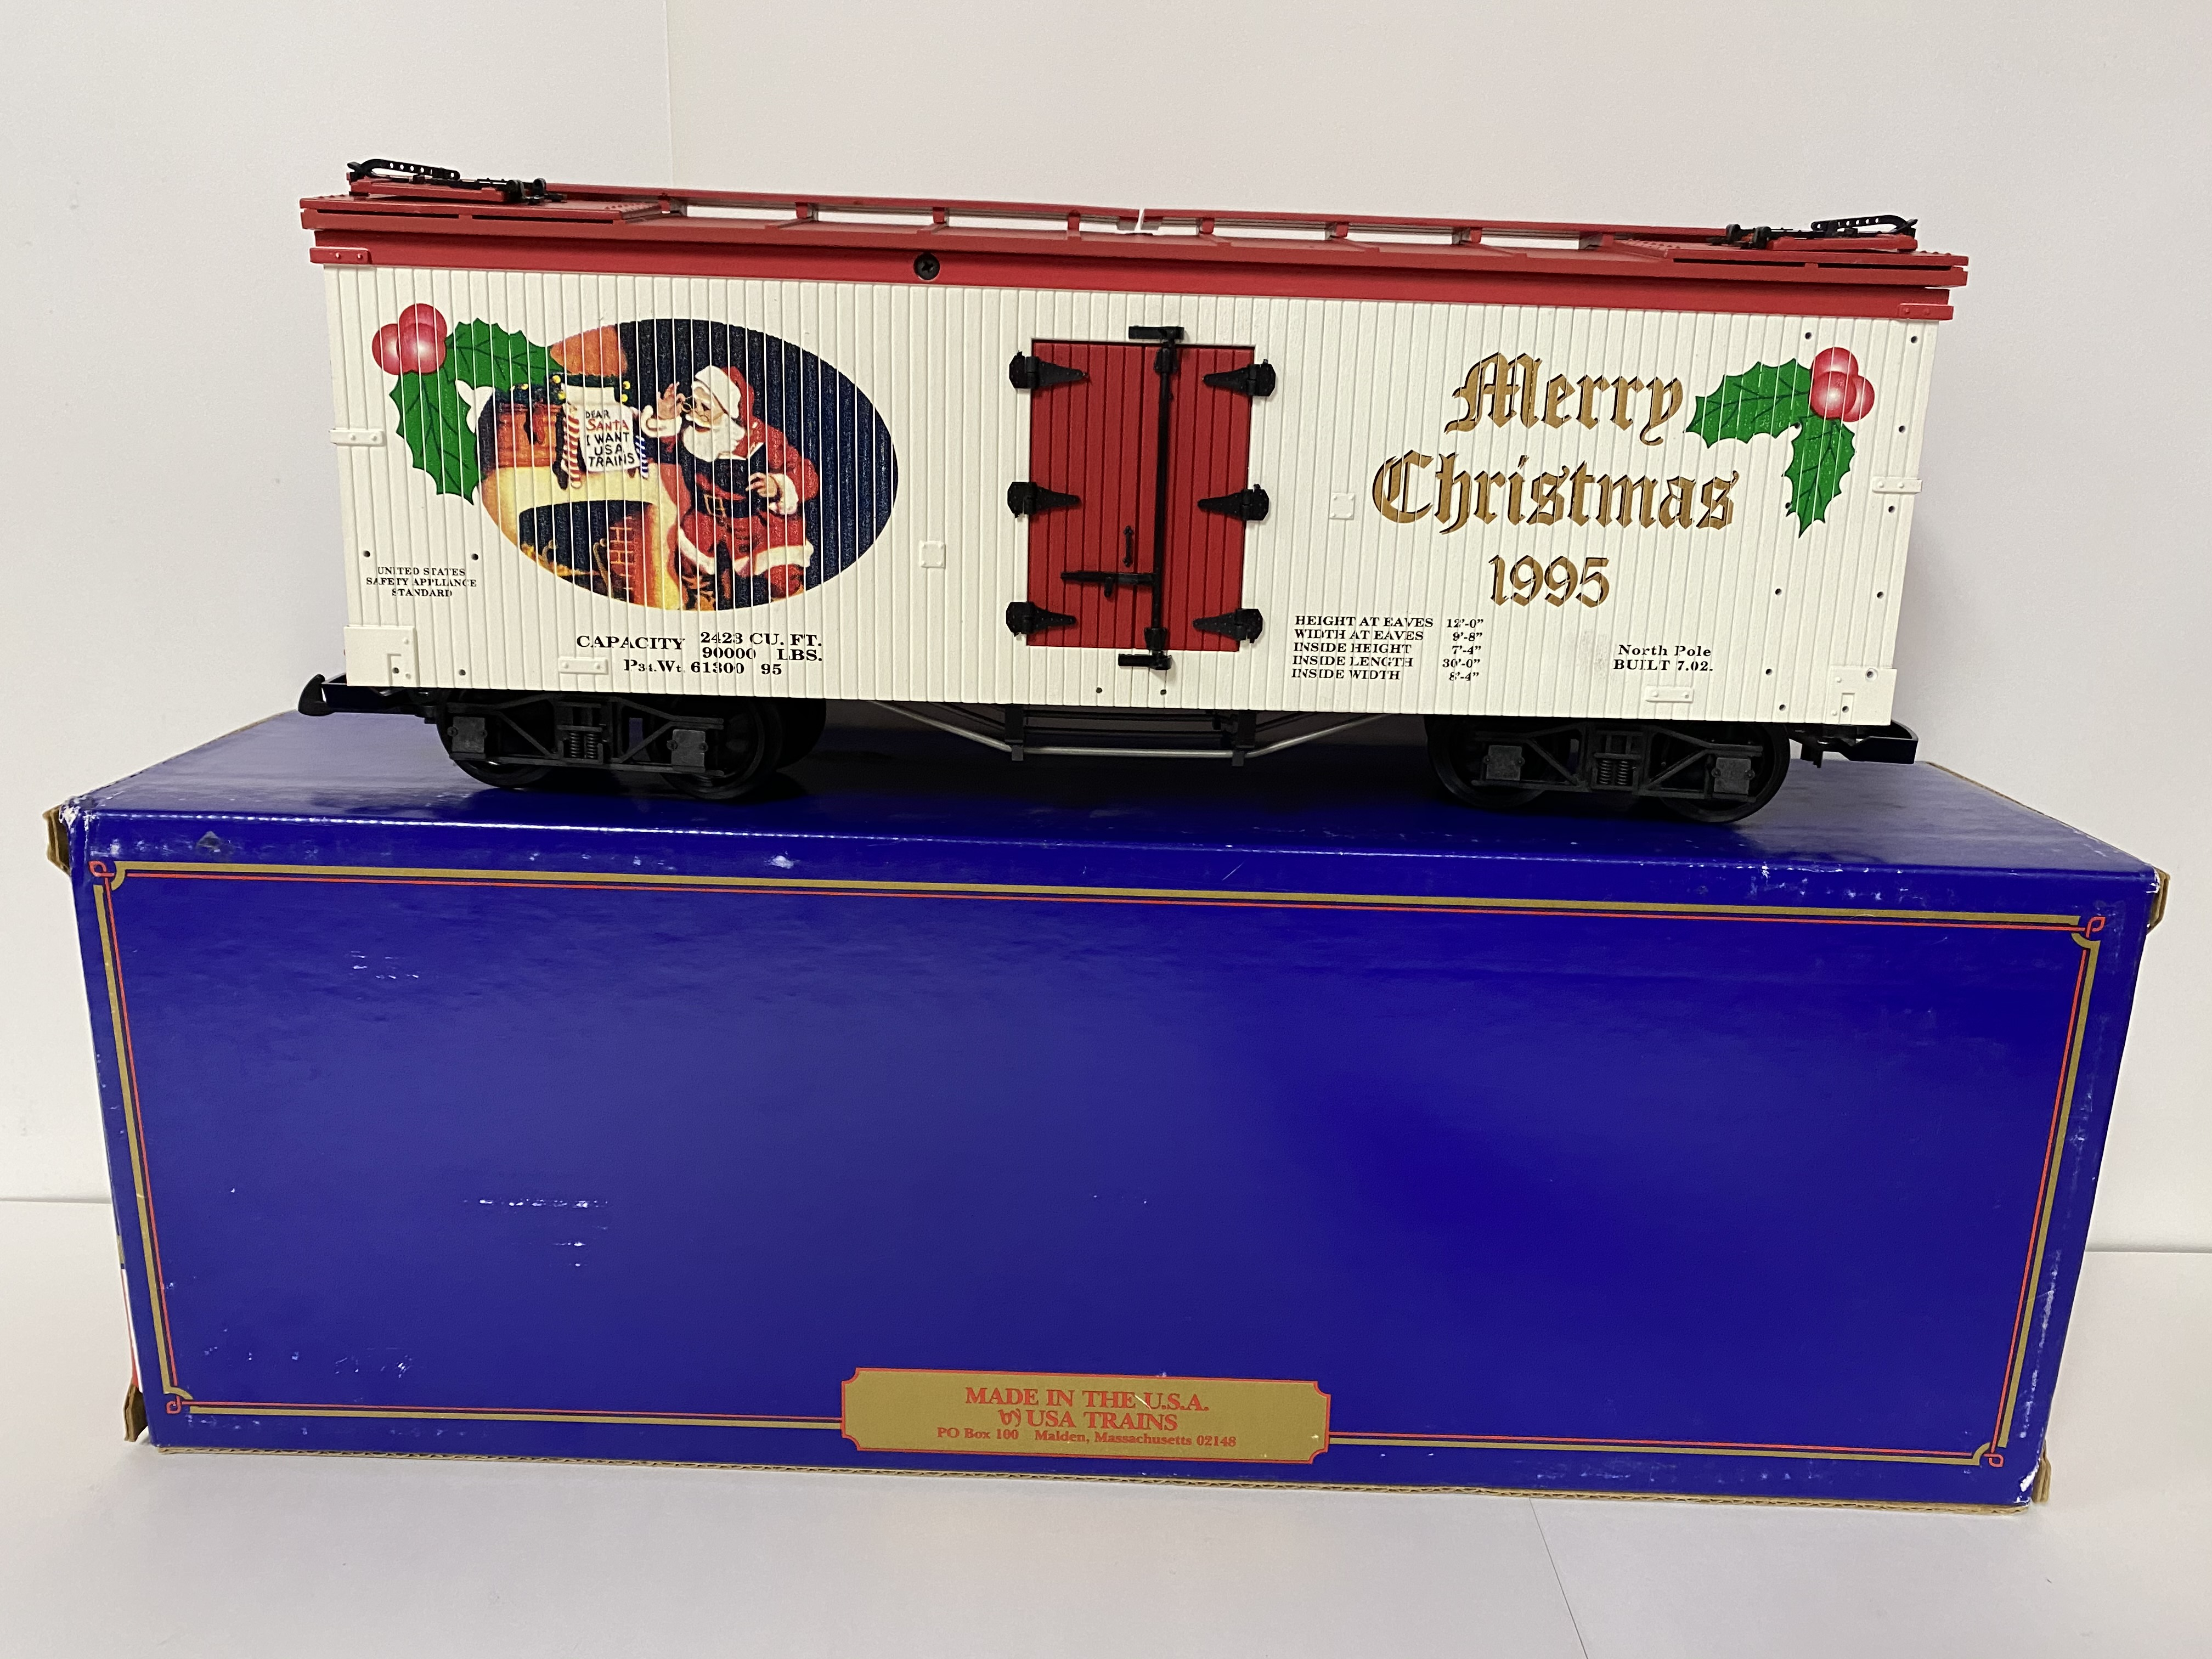 1995 Christmas Reefer (USA Trains R-13013)